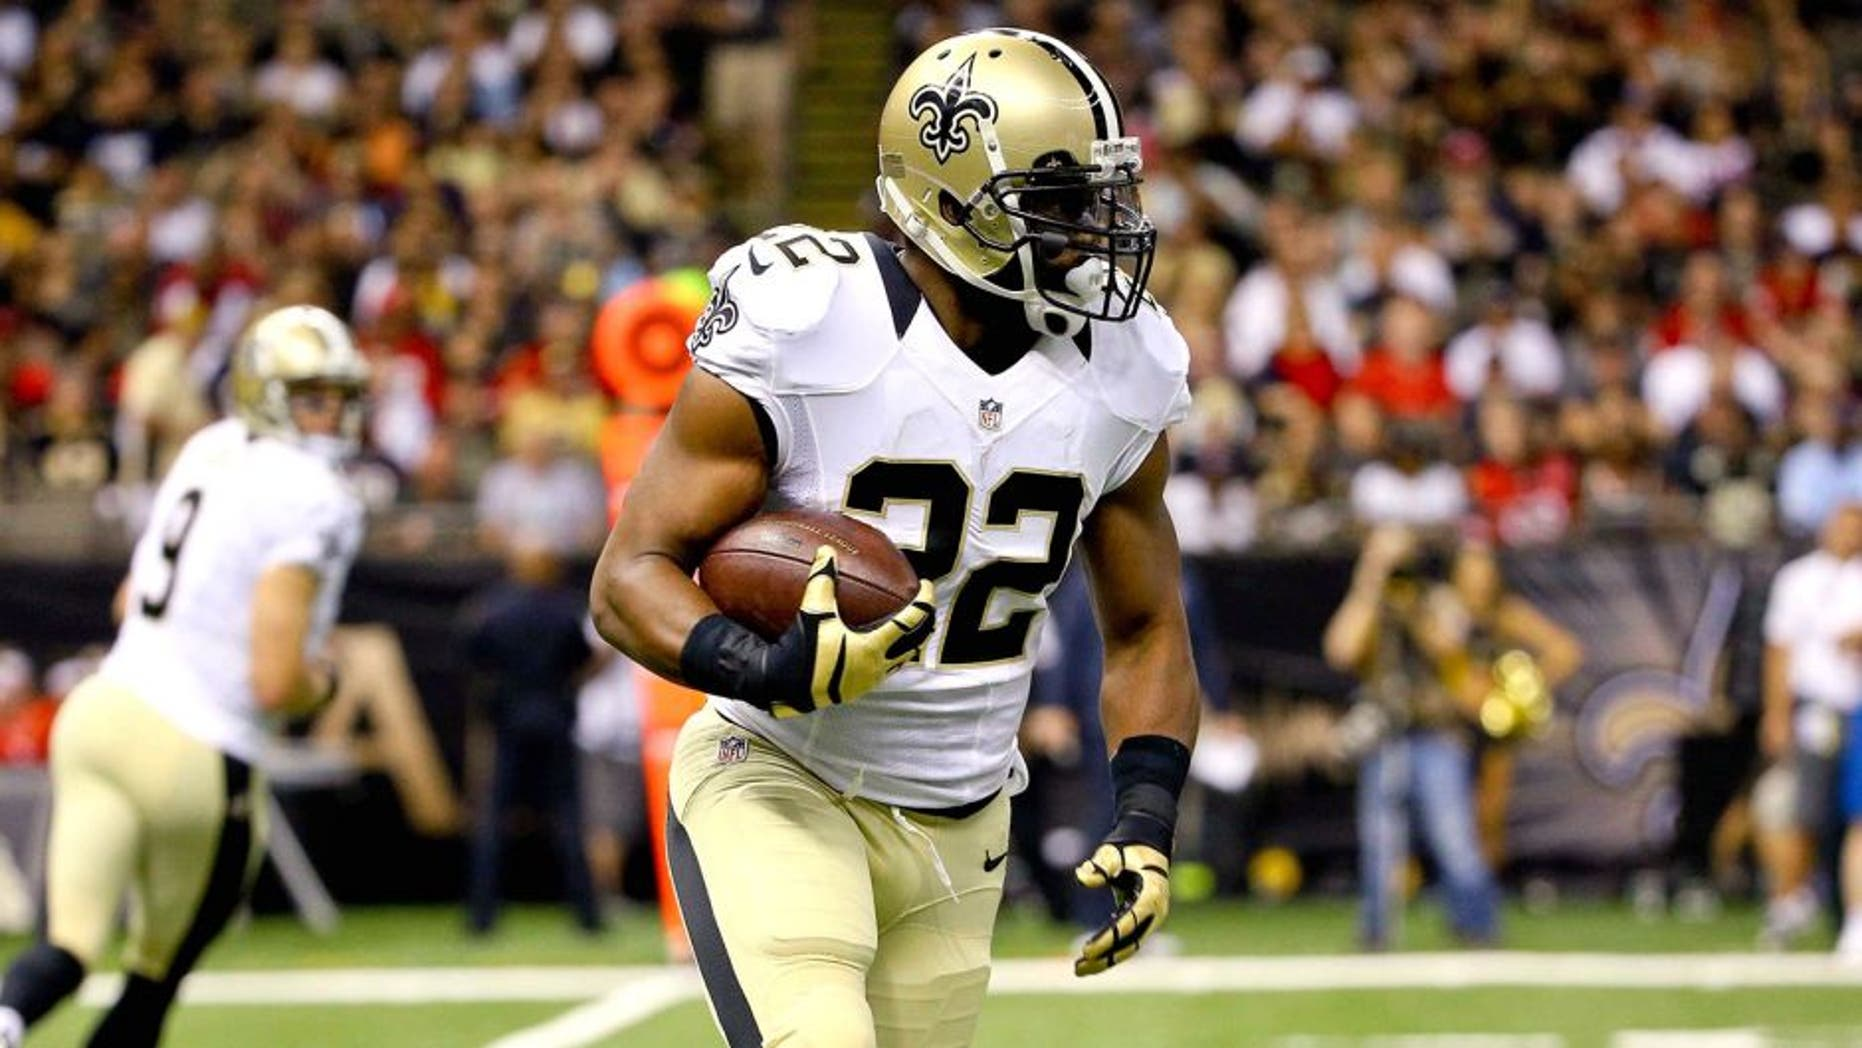 Aug 30, 2015; New Orleans, LA, USA; New Orleans Saints running back Mark Ingram (22) runs against the Houston Texans during the first quarter of a preseason game at the Mercedes-Benz Superdome. Mandatory Credit: Derick E. Hingle-USA TODAY Sports